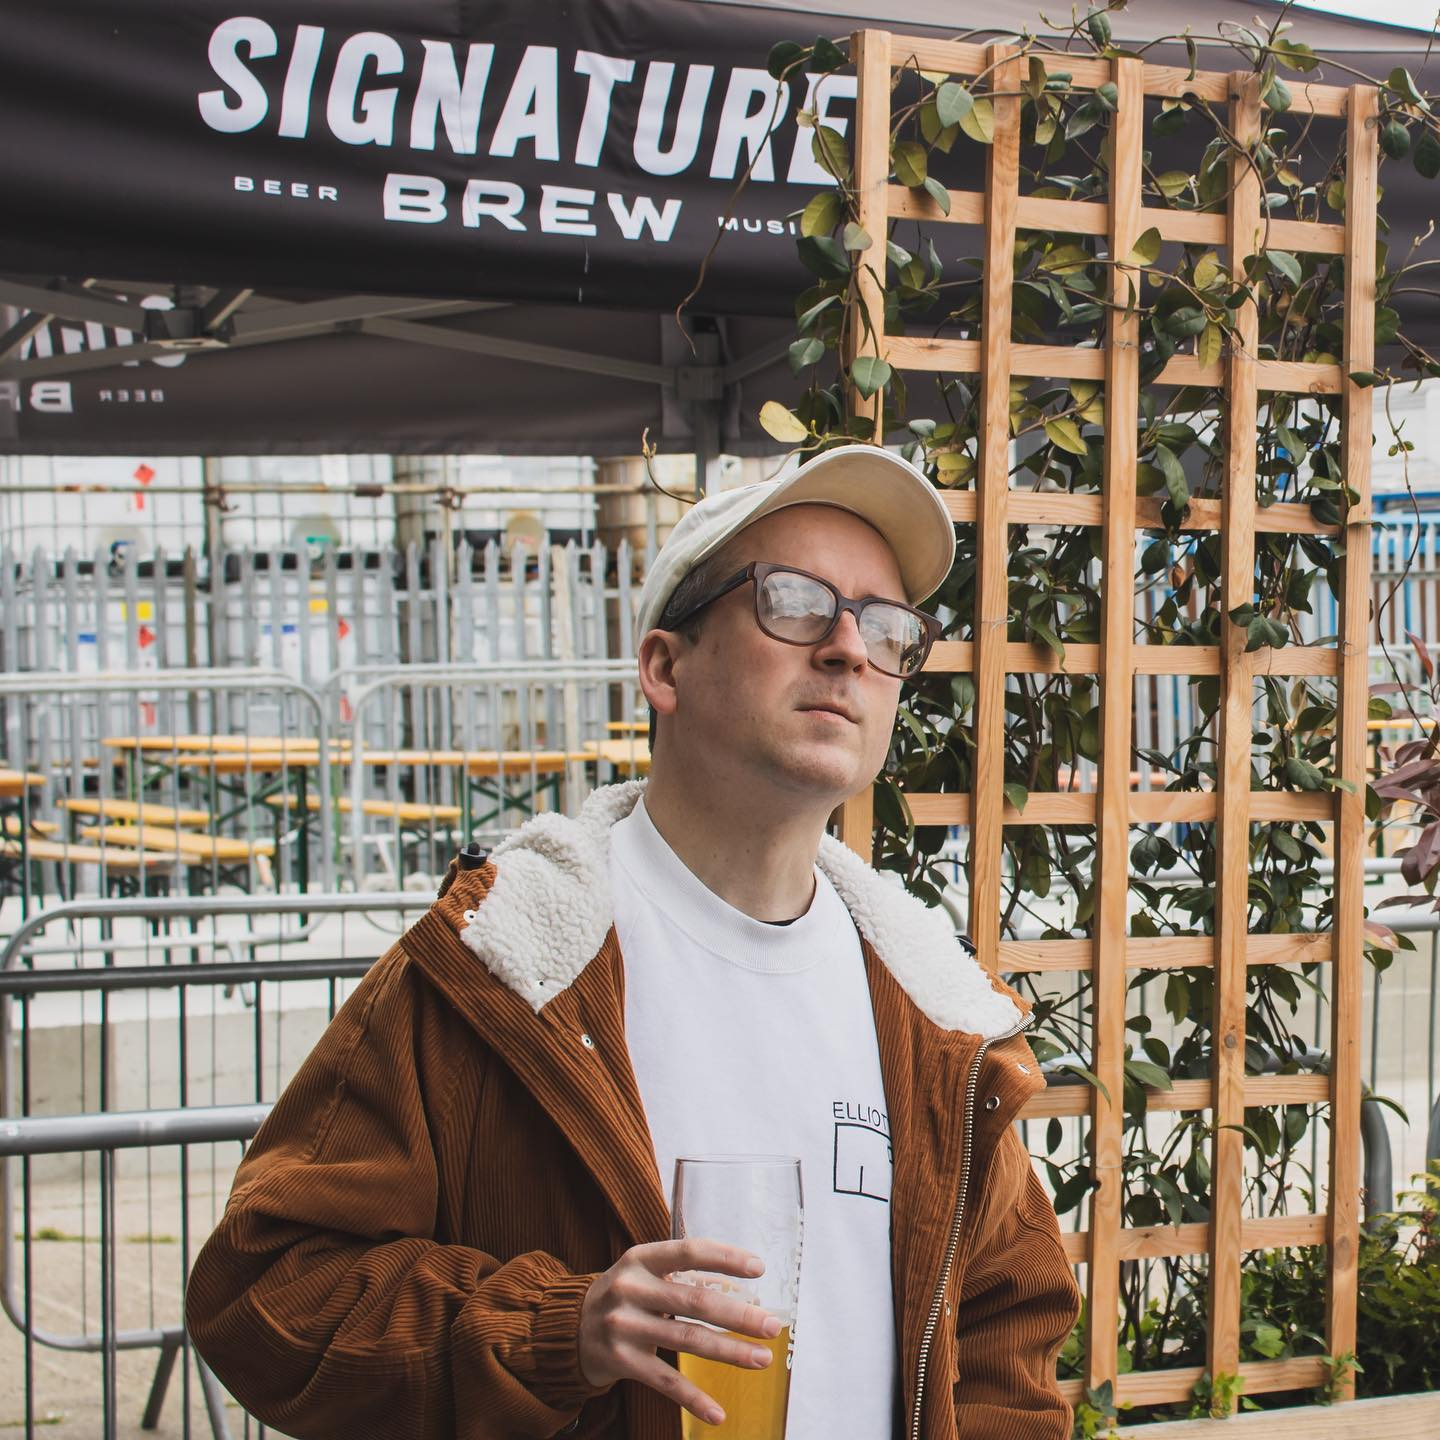 Crown & Kettle to host Signature Brew takeover with Hot Chip supported by The Manc, The Manc